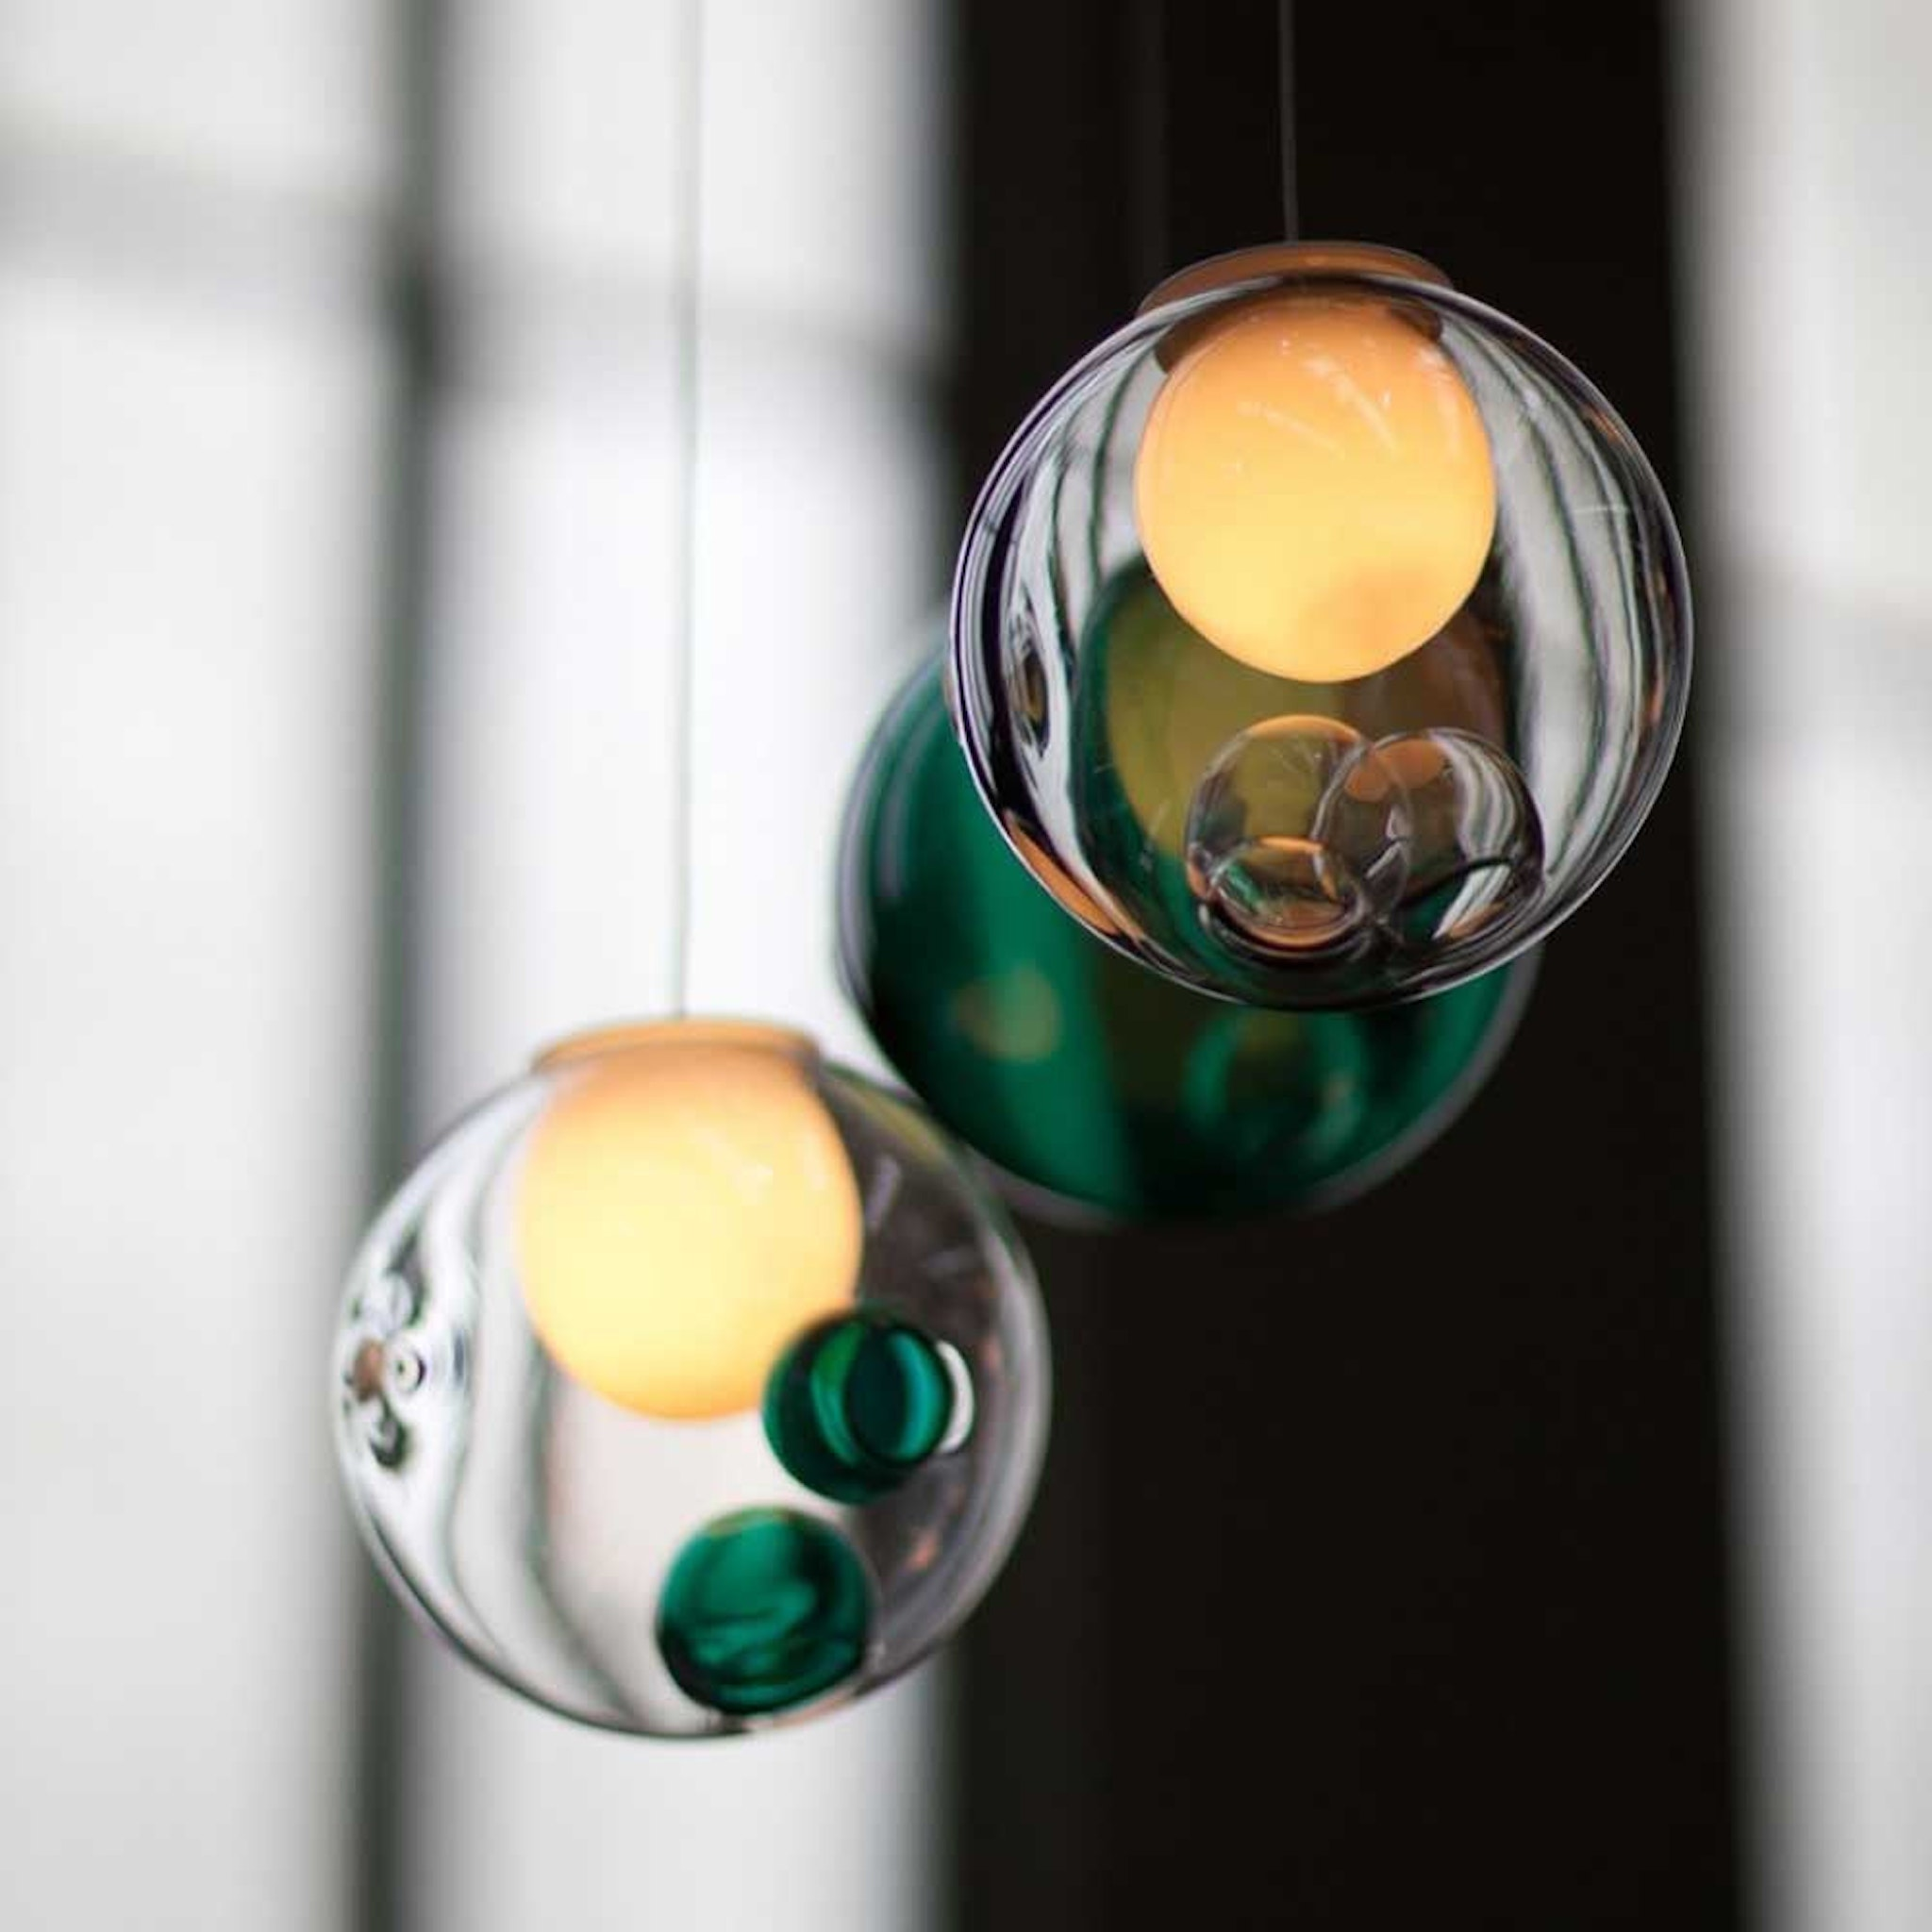 Bocci 28.1 Single pendant by Omer Arbel